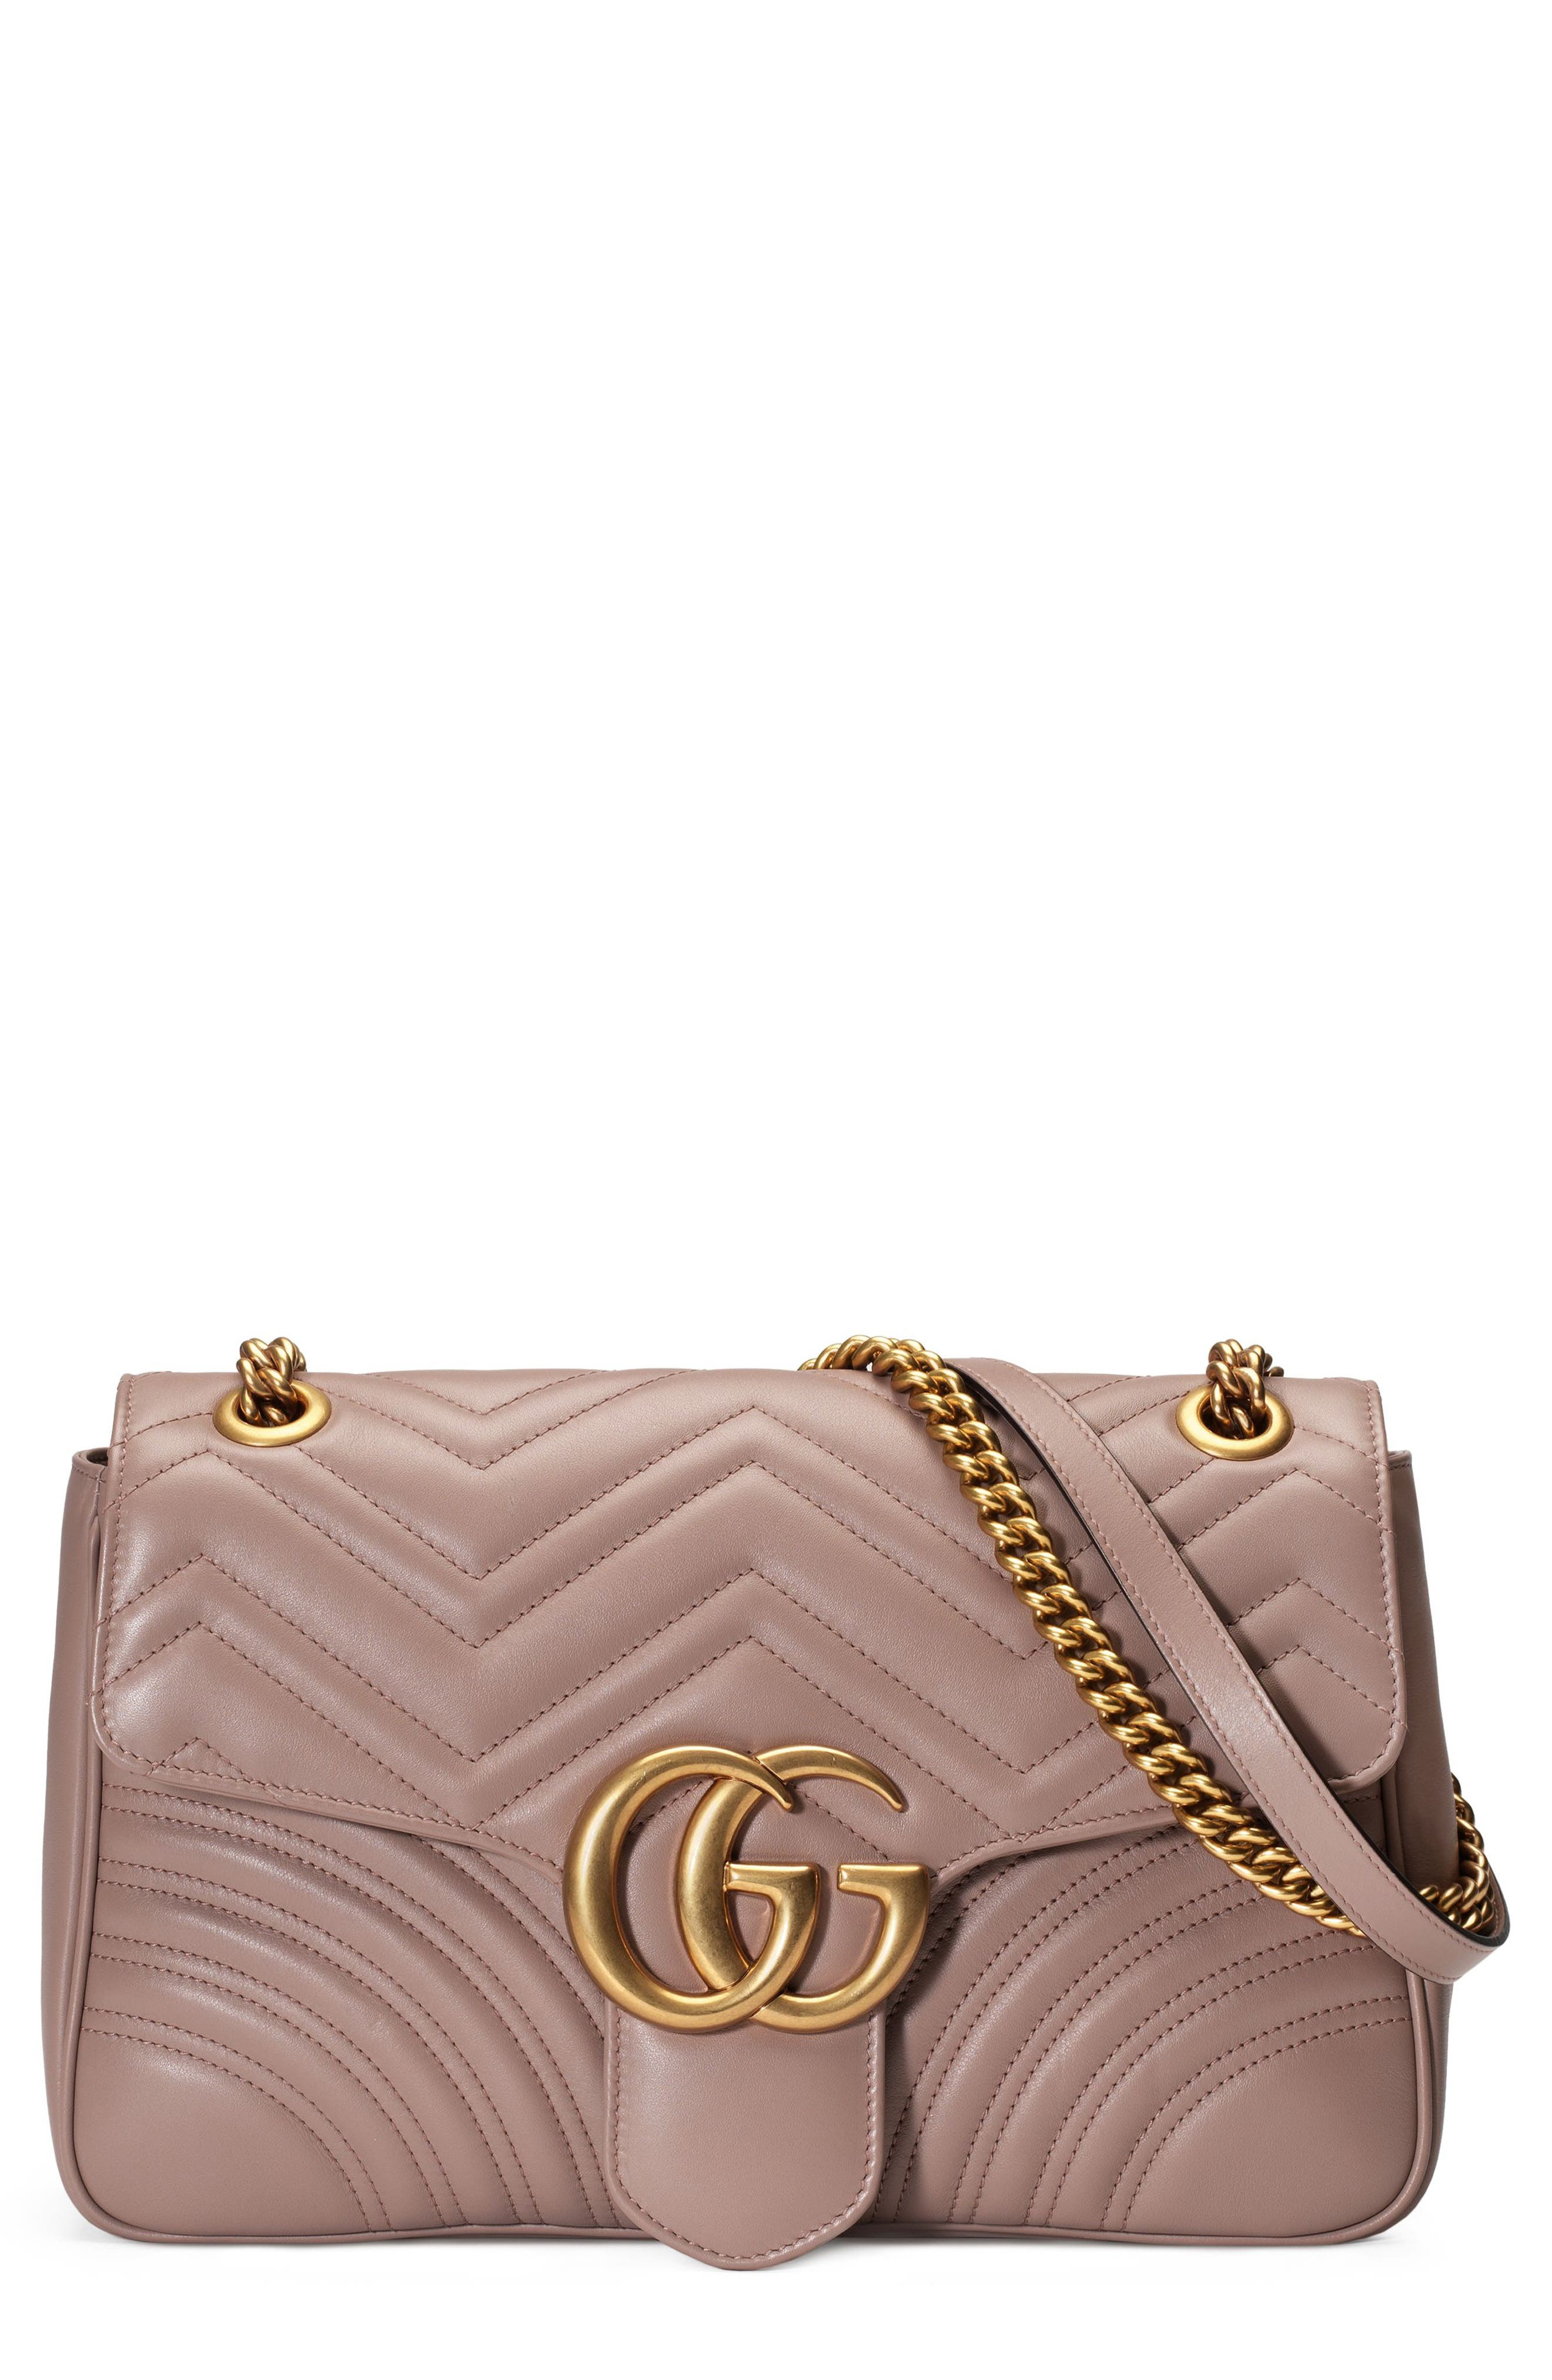 Medium GG Marmont 2.0 Matelassé Leather Shoulder Bag,                             Main thumbnail 1, color,                             PORCELAIN ROSE/ PORCELAIN ROSE